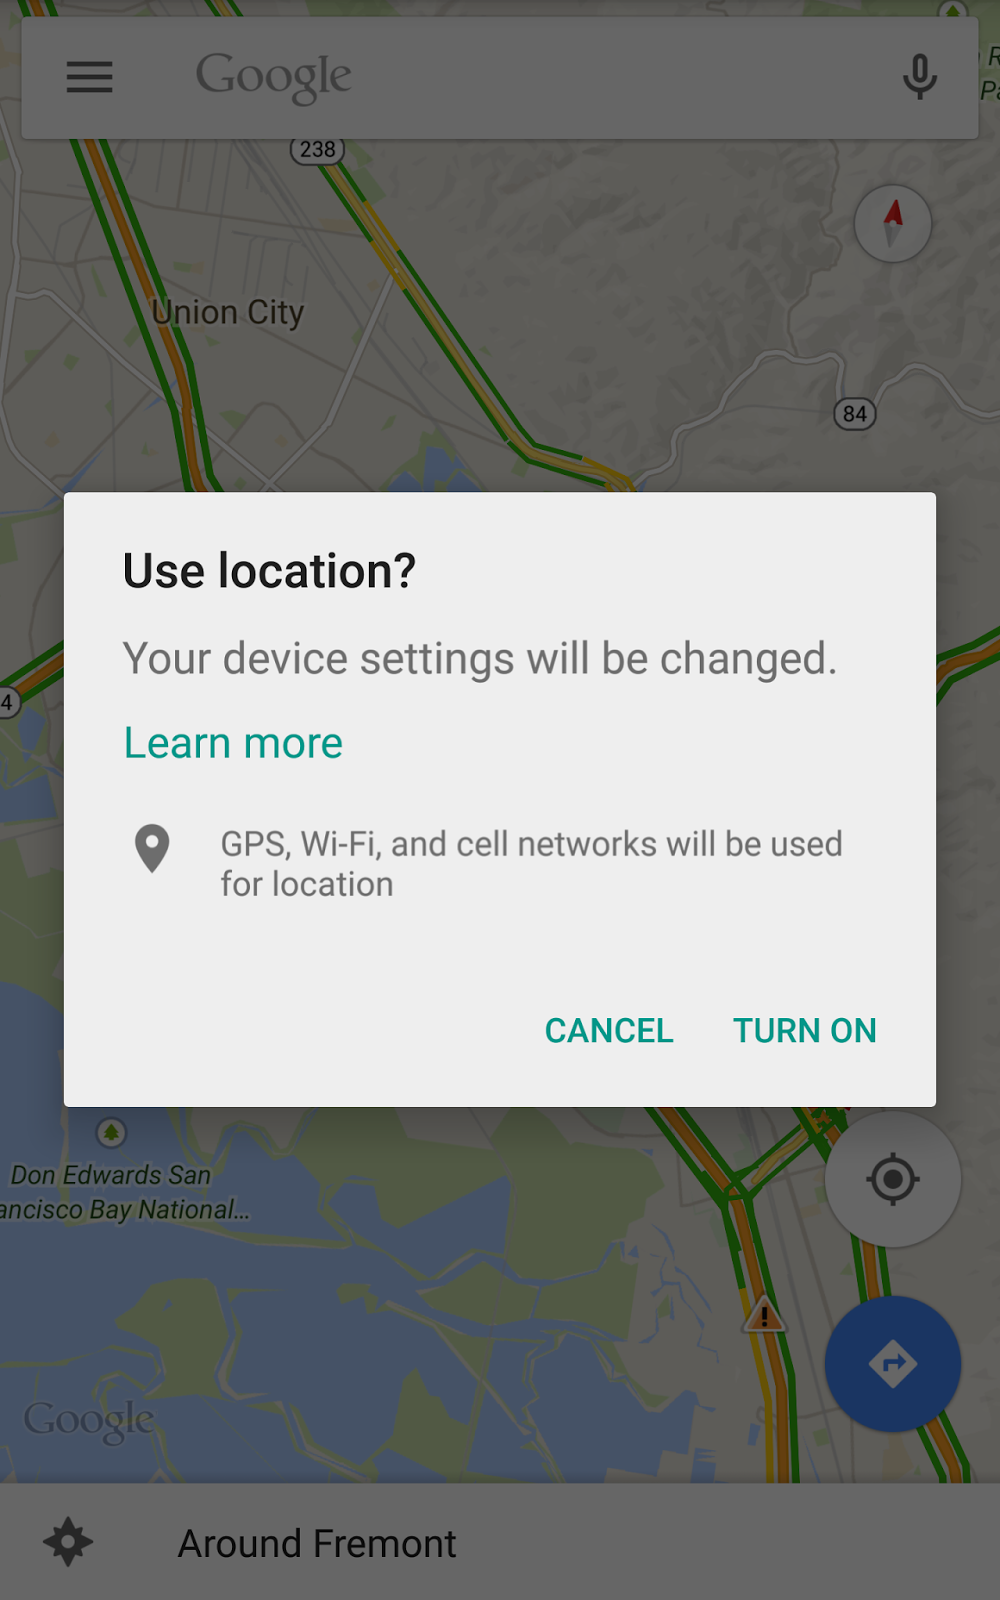 Google Play Services 7.0 Adds APIs For Detecting Places ...